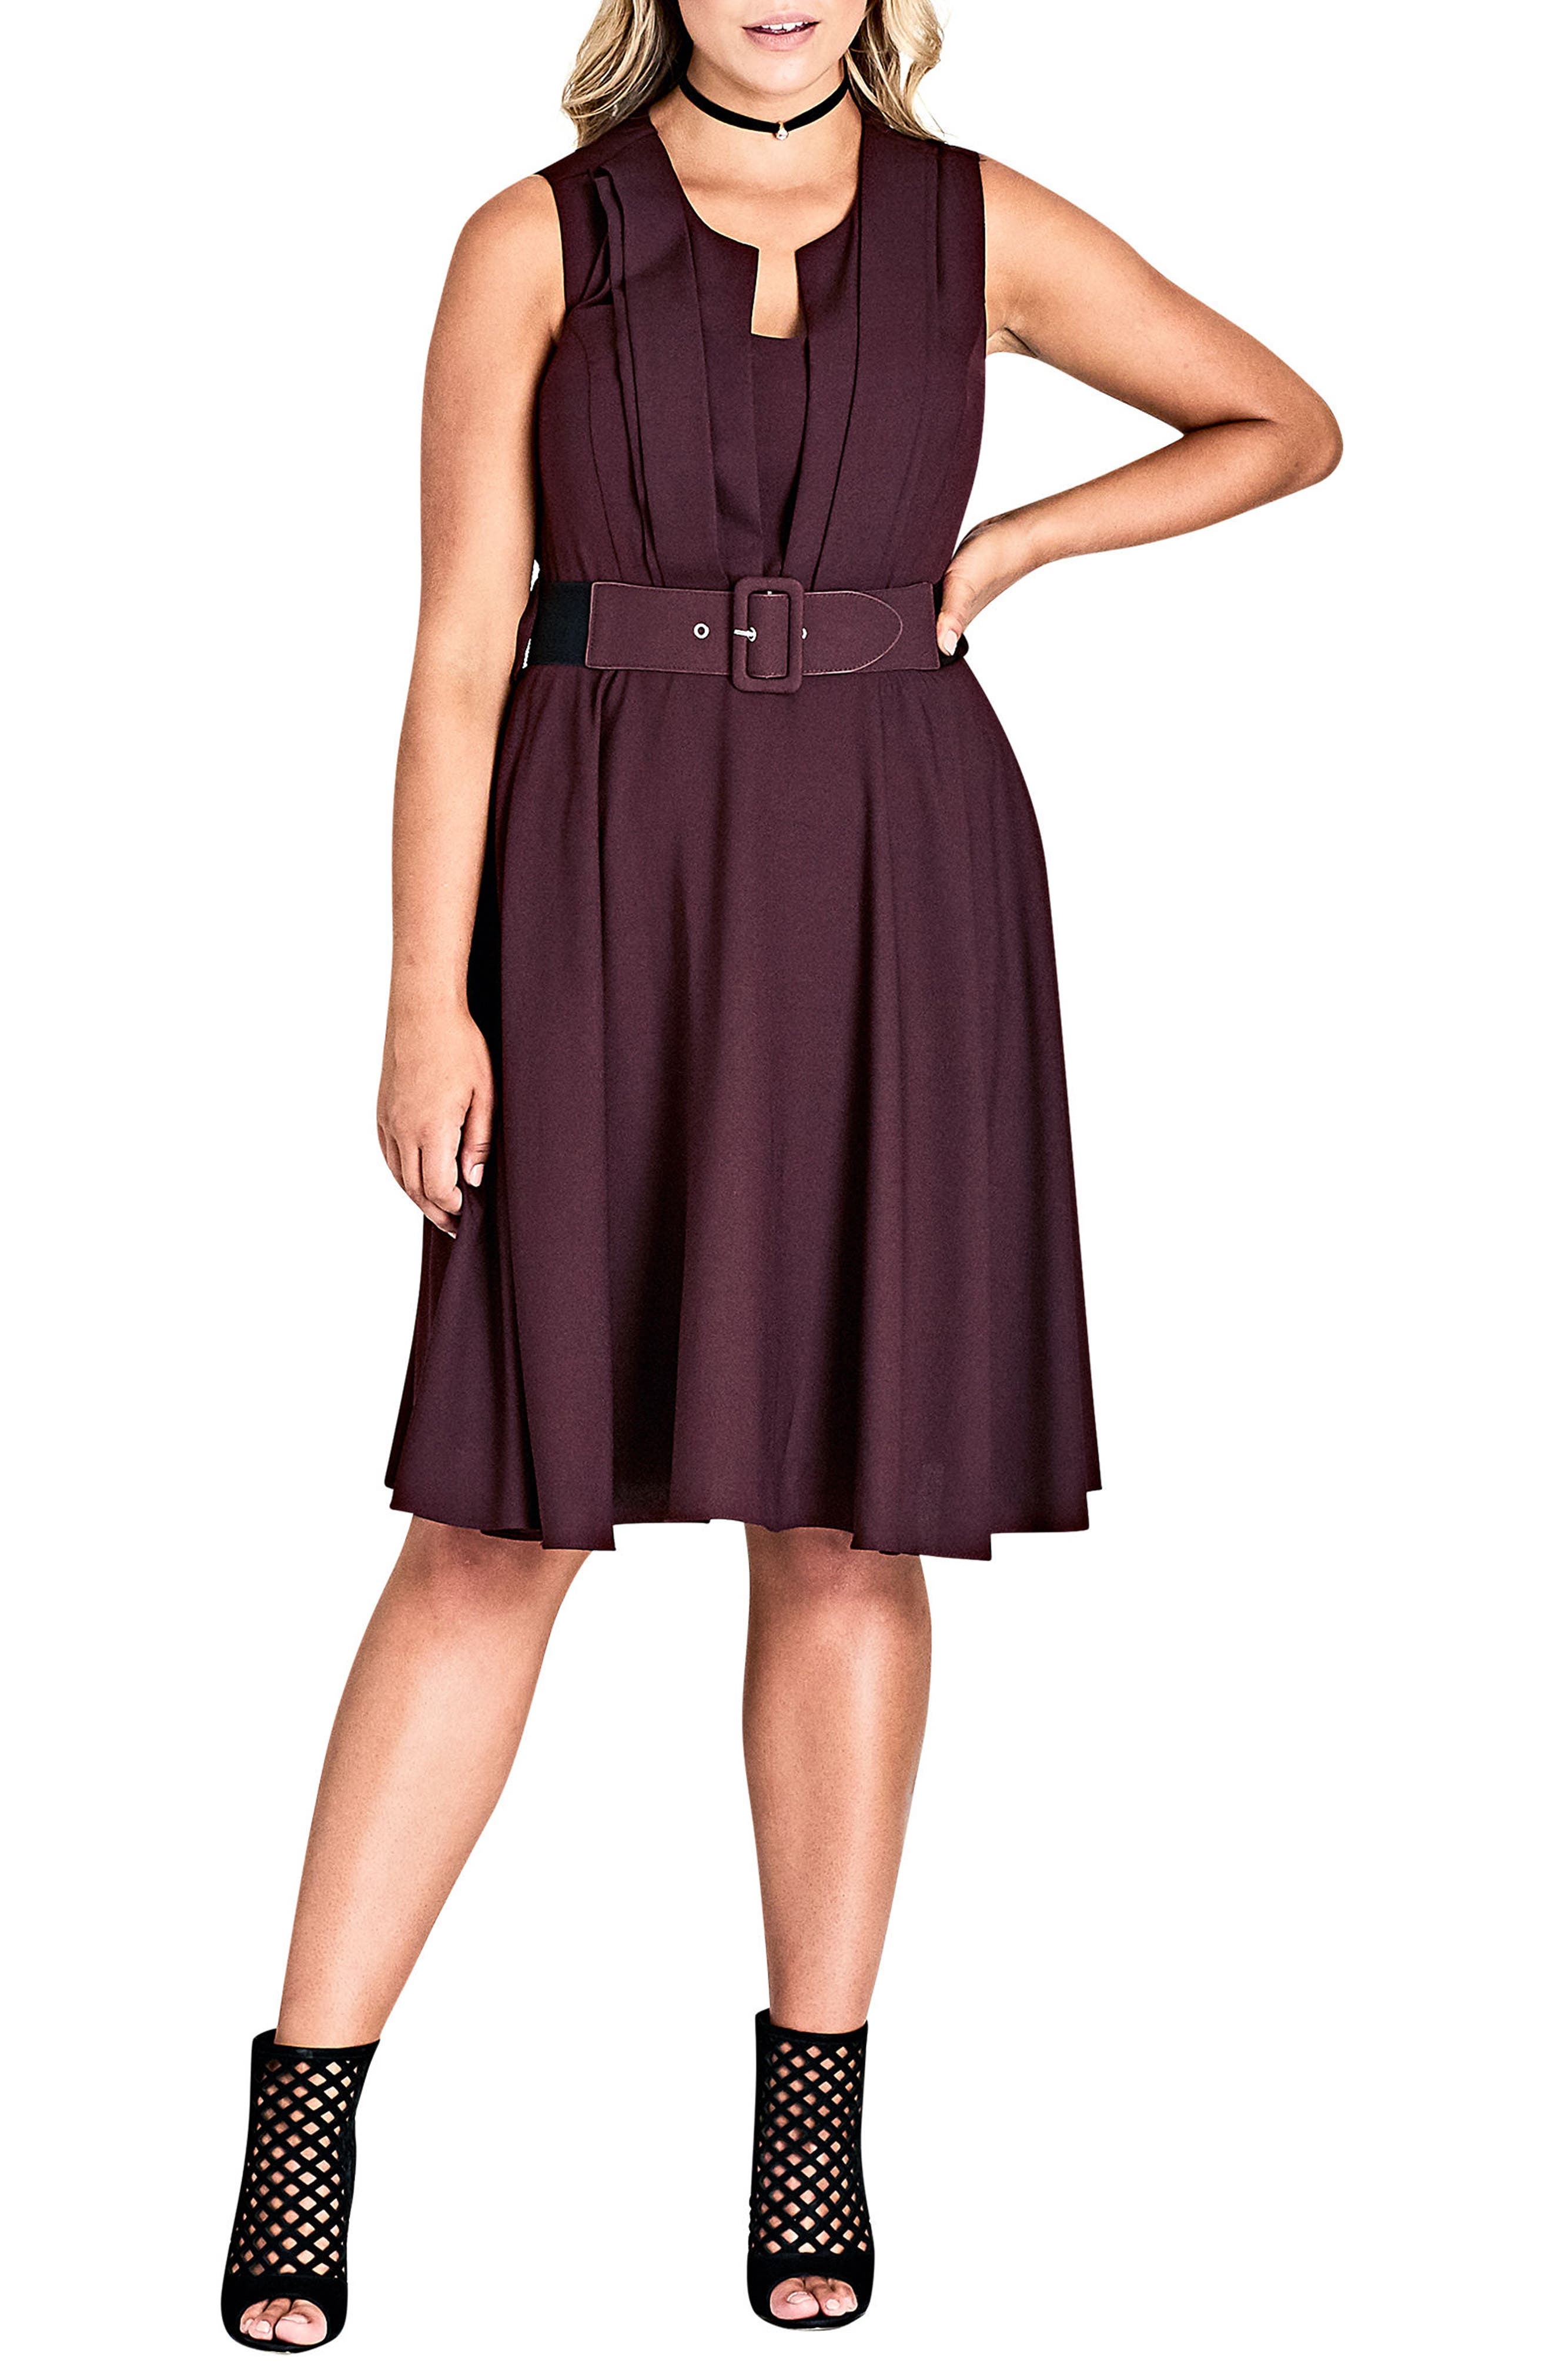 Alternate Image 1 Selected - City Chic Vintage Veronica Belted Pleat Fit & Flare Dress (Plus Size)